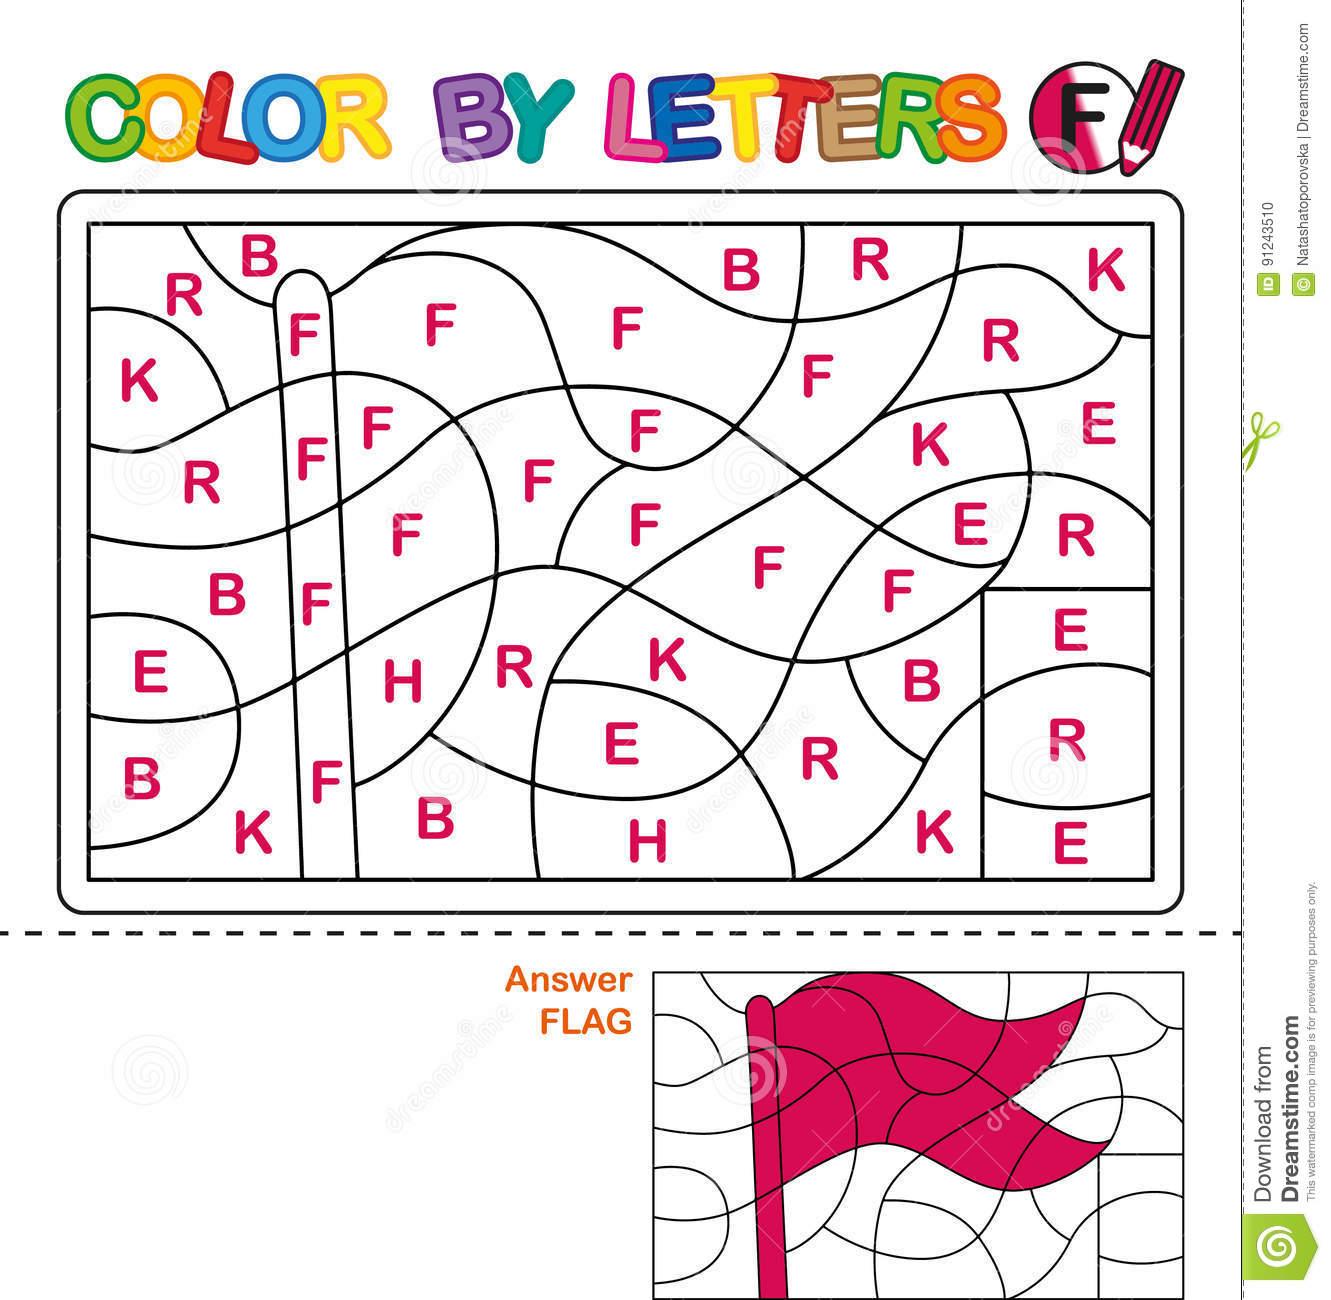 1eca3a7df65be Color by letters. Learning the capital letters of the alphabet. Puzzle for  children. Letter F. Flag. Preschool Education.